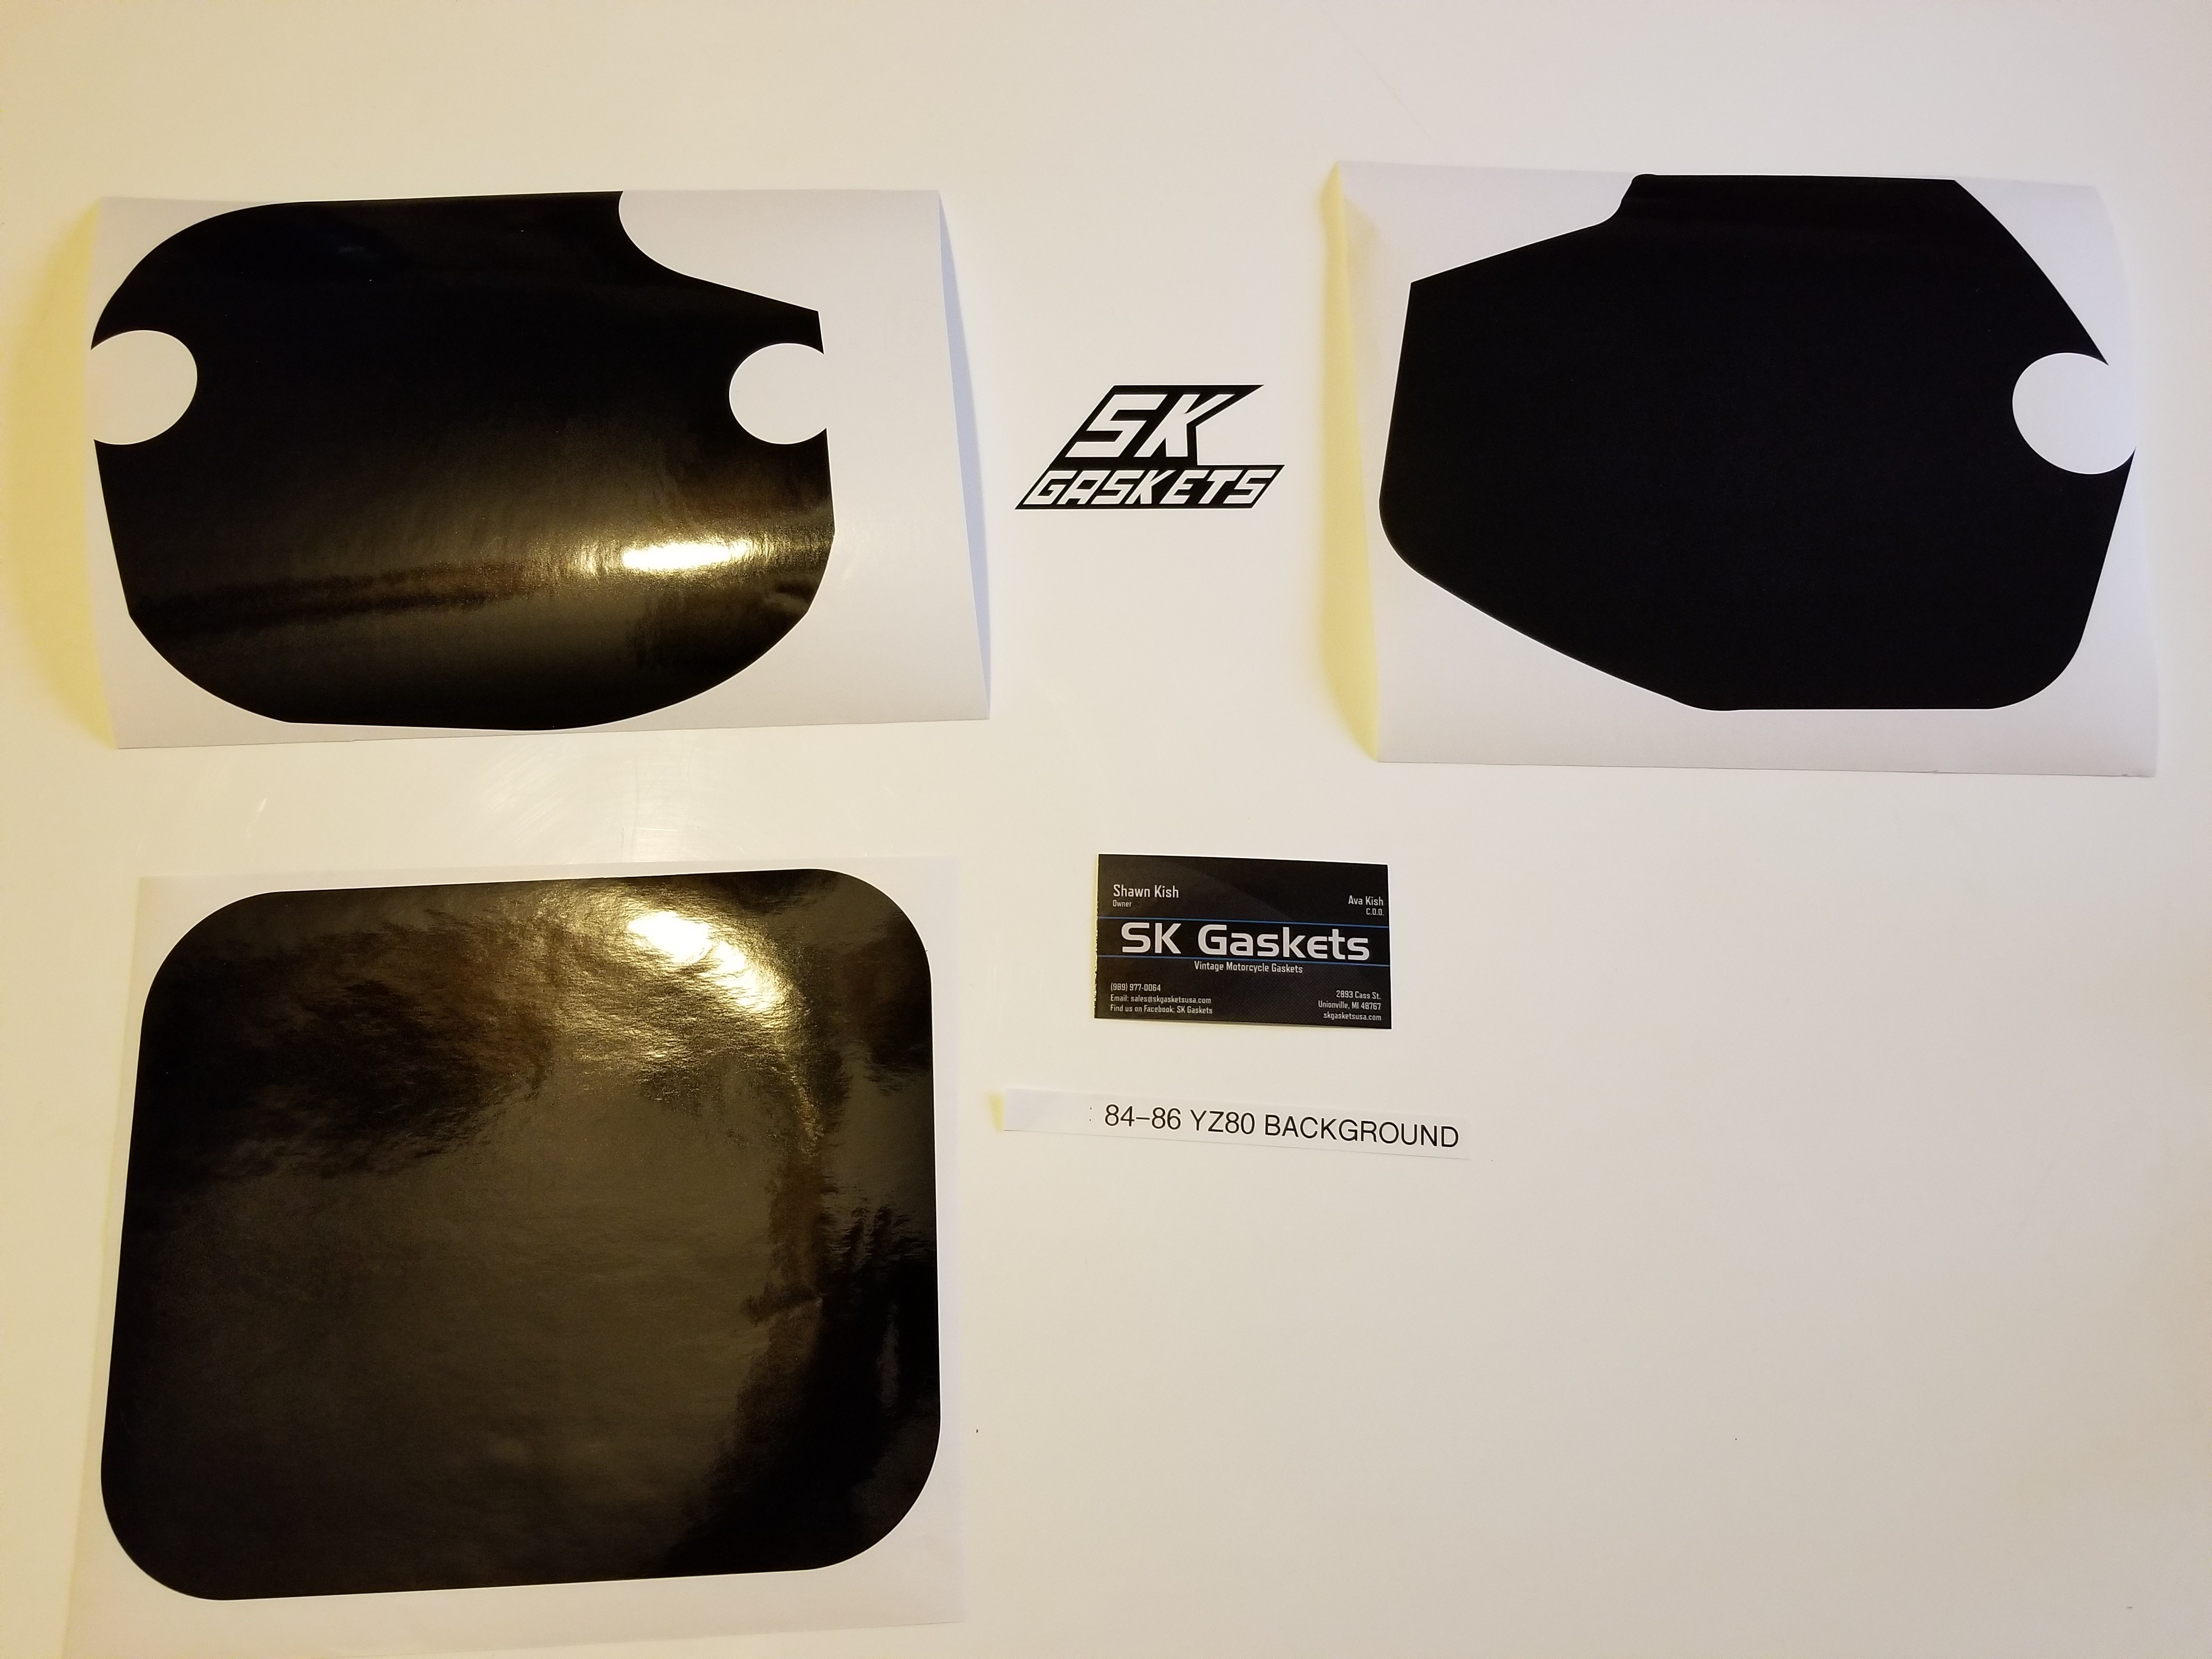 1984 1985 1986 Yamaha YZ 80 Number Plate Backgrounds Black